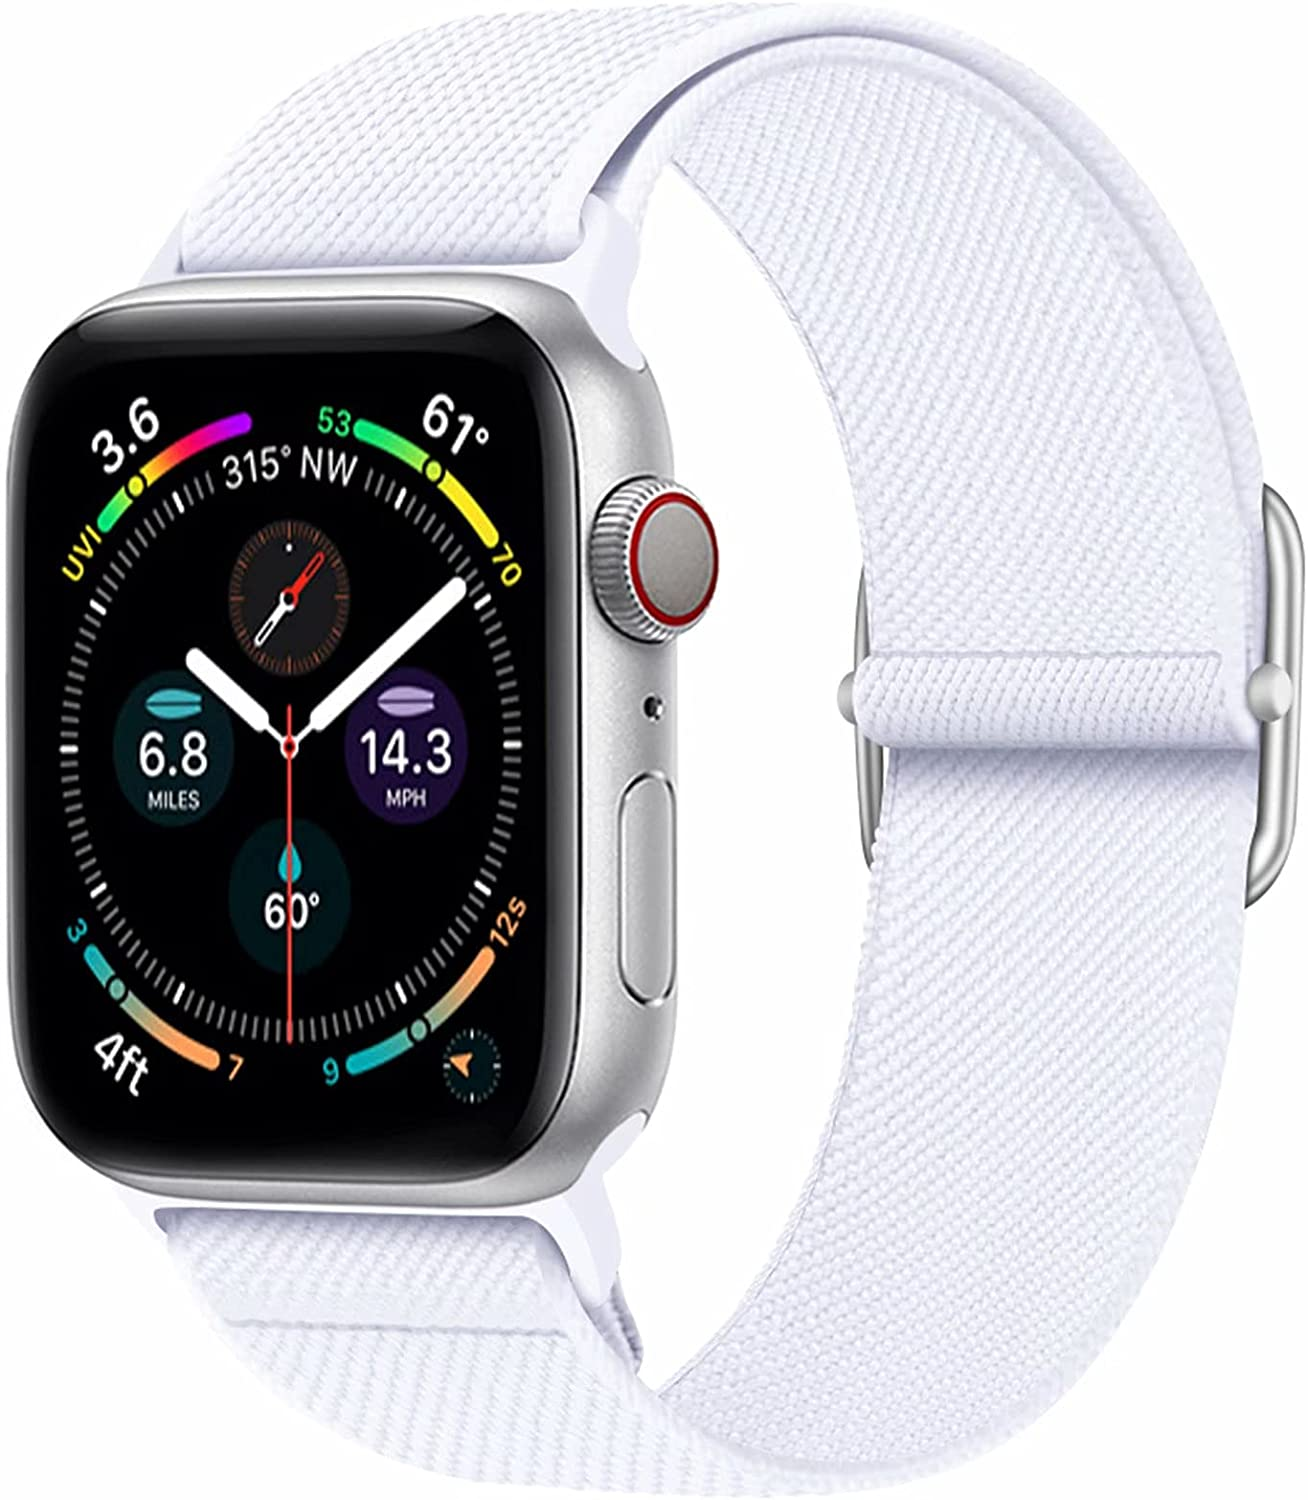 ENJINER Stretchy Nylon Solo Loop Band Compatible for Apple Watch Bands 38mm 40mm 42mm 44mm, Adjustable Braided Elastic Sport Strap Women Men Replacement Band for iWatch Series SE 6/5/4/3/2/1